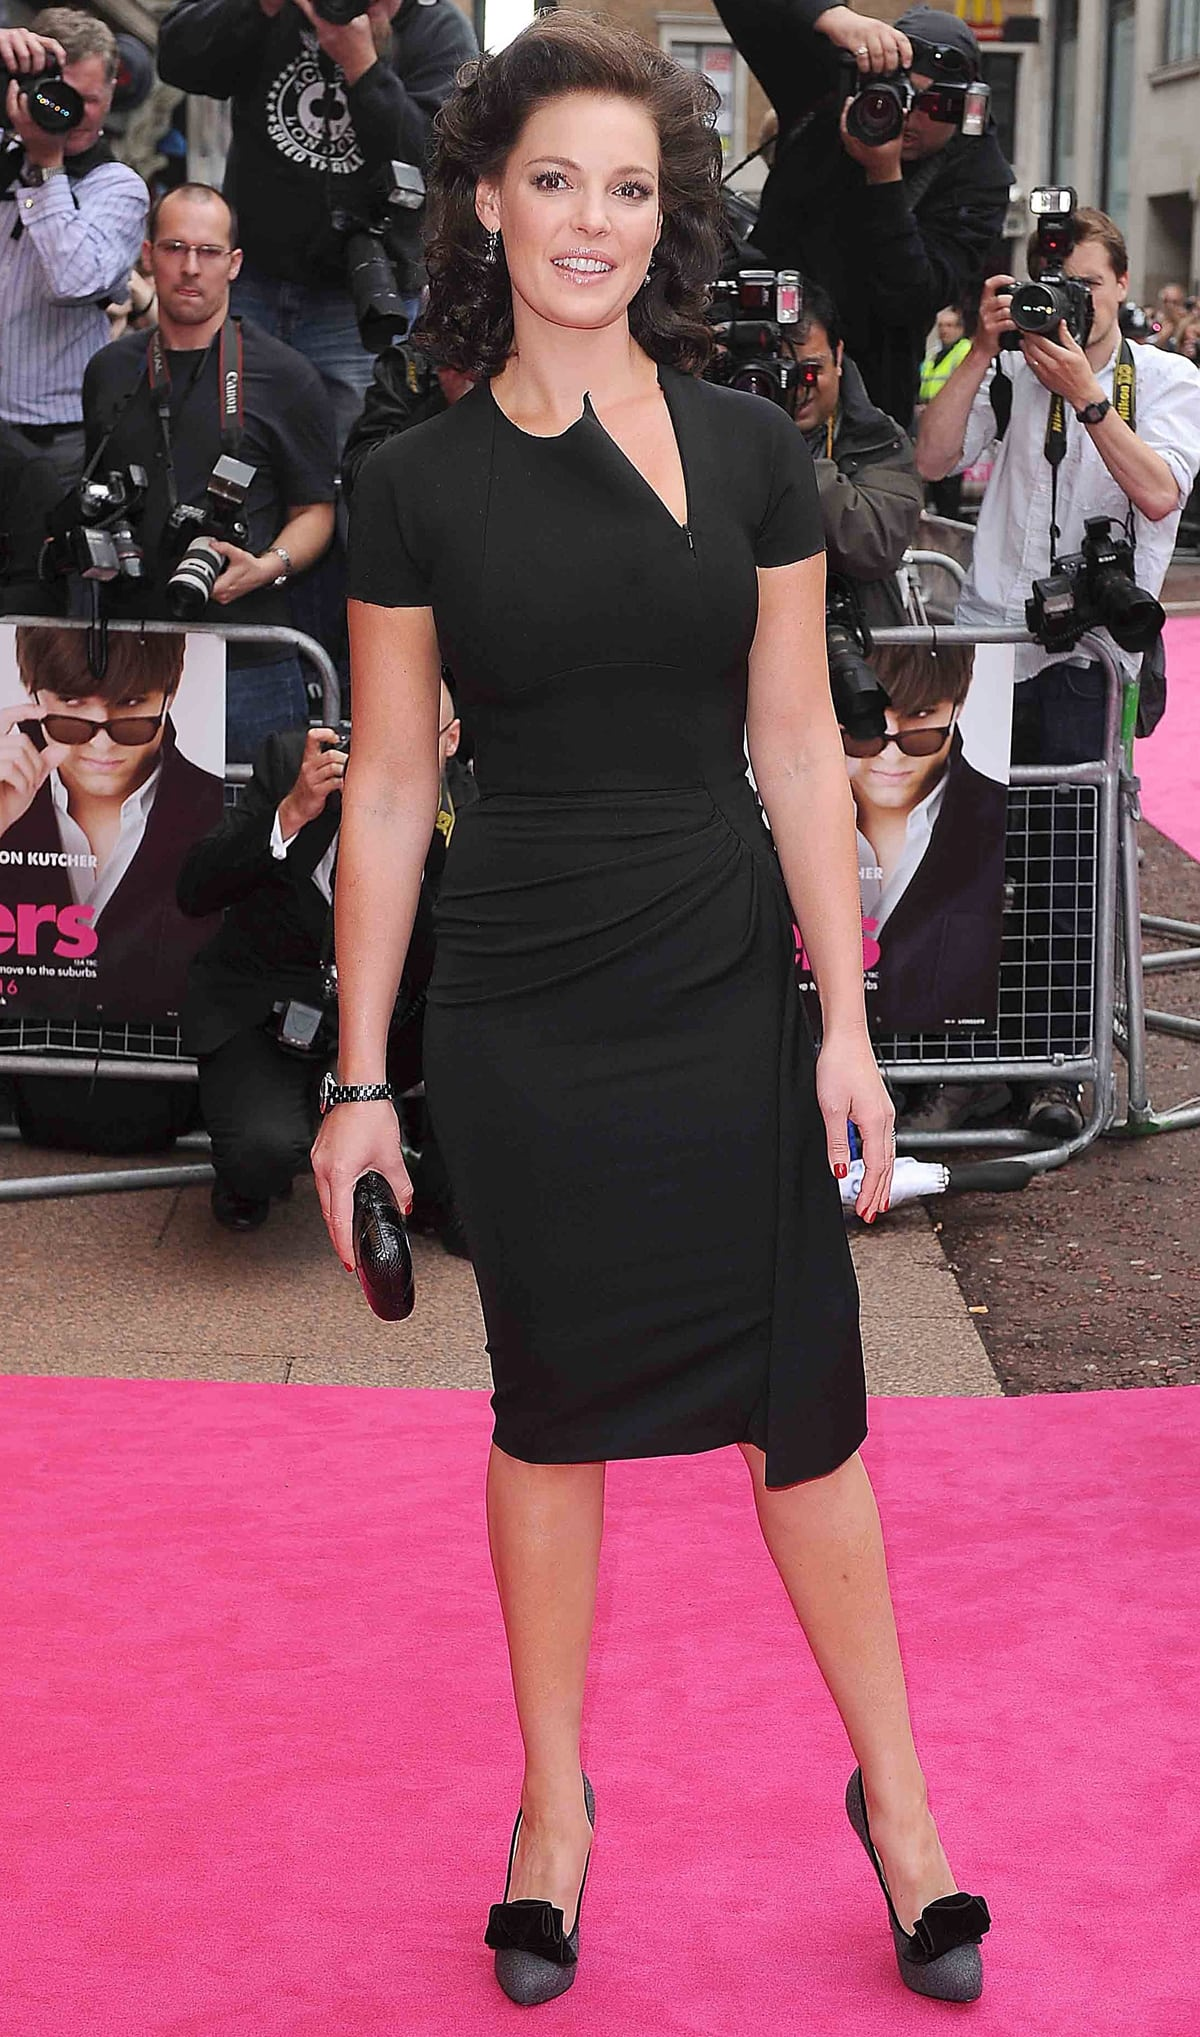 Katherine Heigl flaunts her legs in a black Victoria Beckham Fall 2010 dress and Christian Louboutin 'Lady Page' heels at the European Premiere of 'Killers'